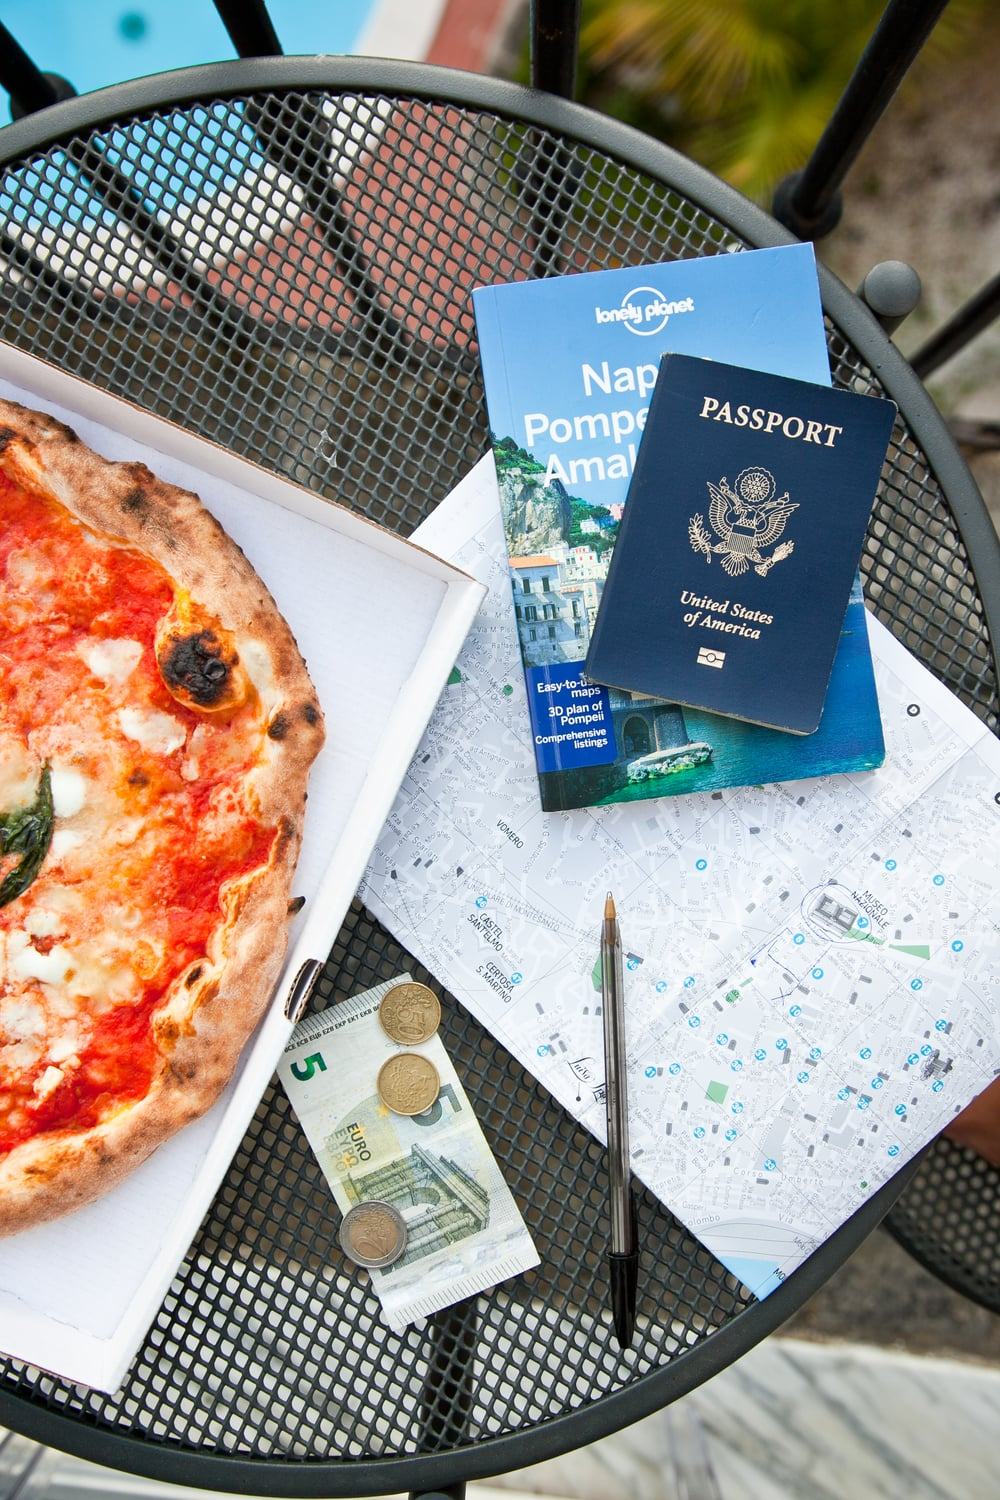 trisa-taro-lunch-table-passport-map-naples-italy.jpg